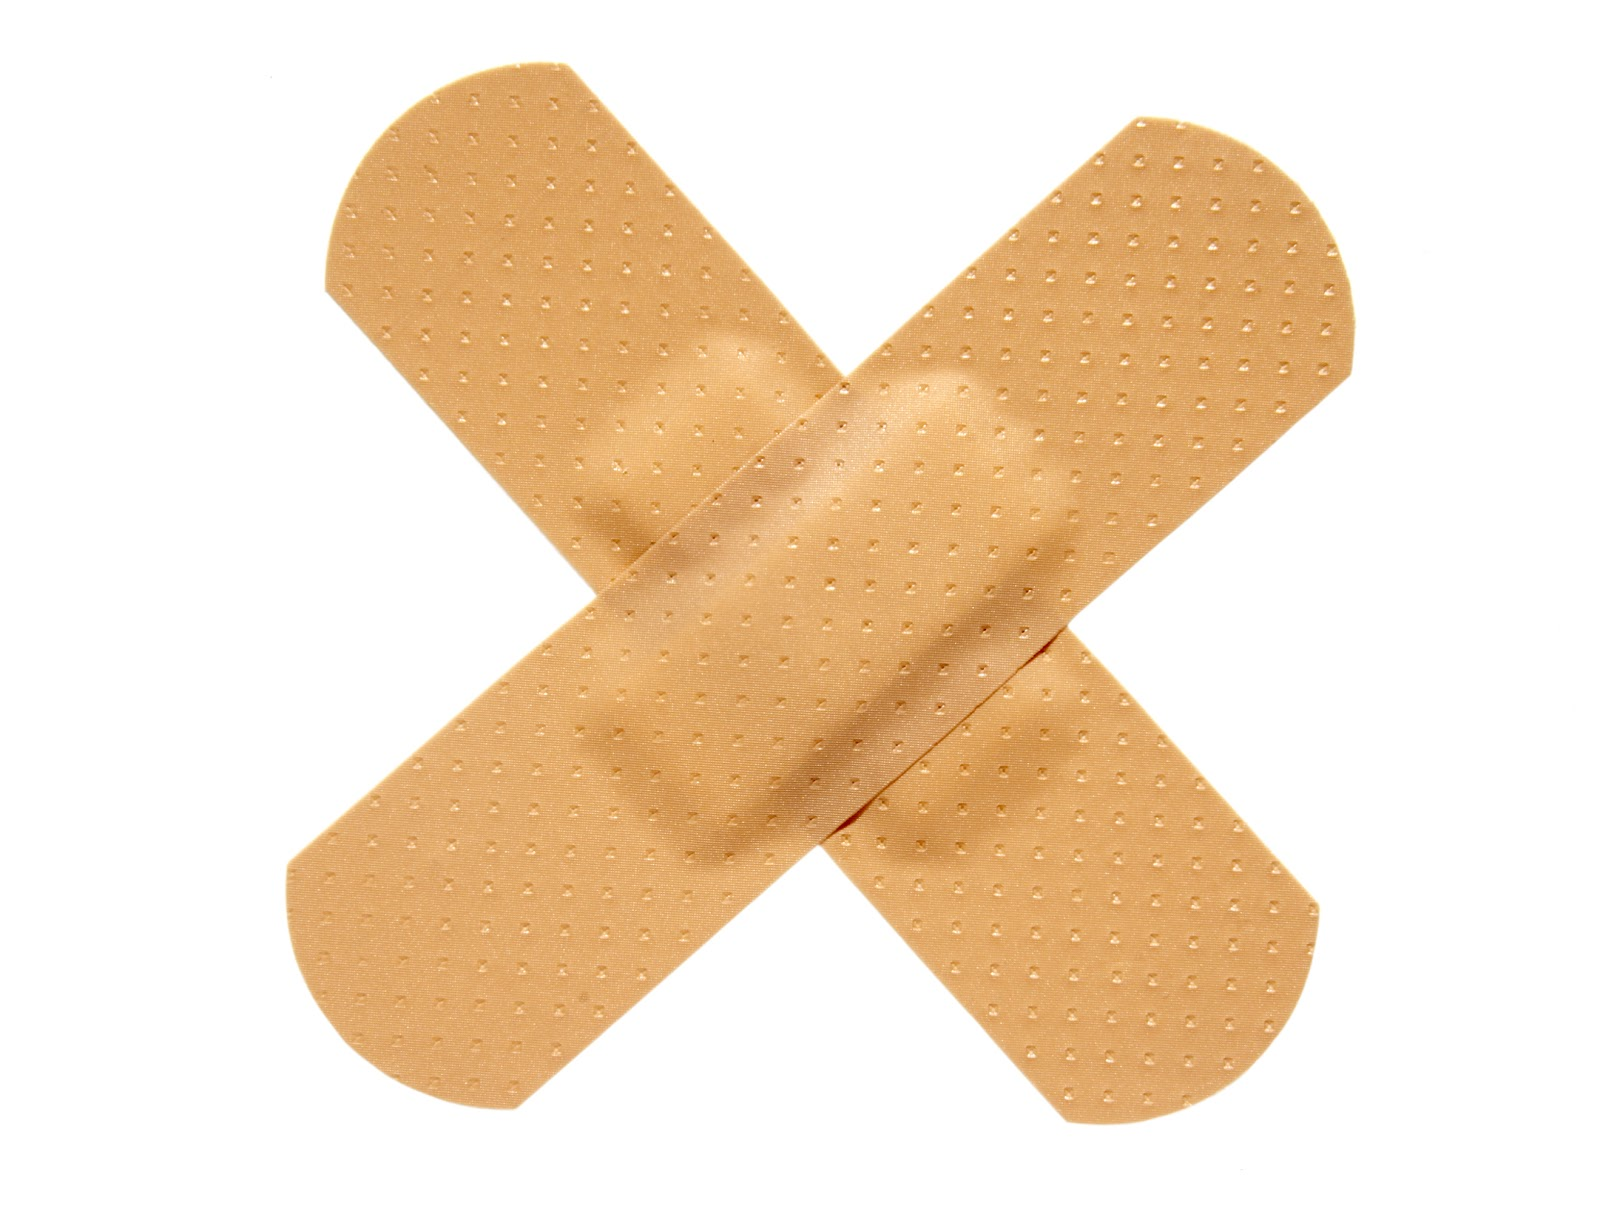 1600x1214 Band Aid Images Free Clipart Images